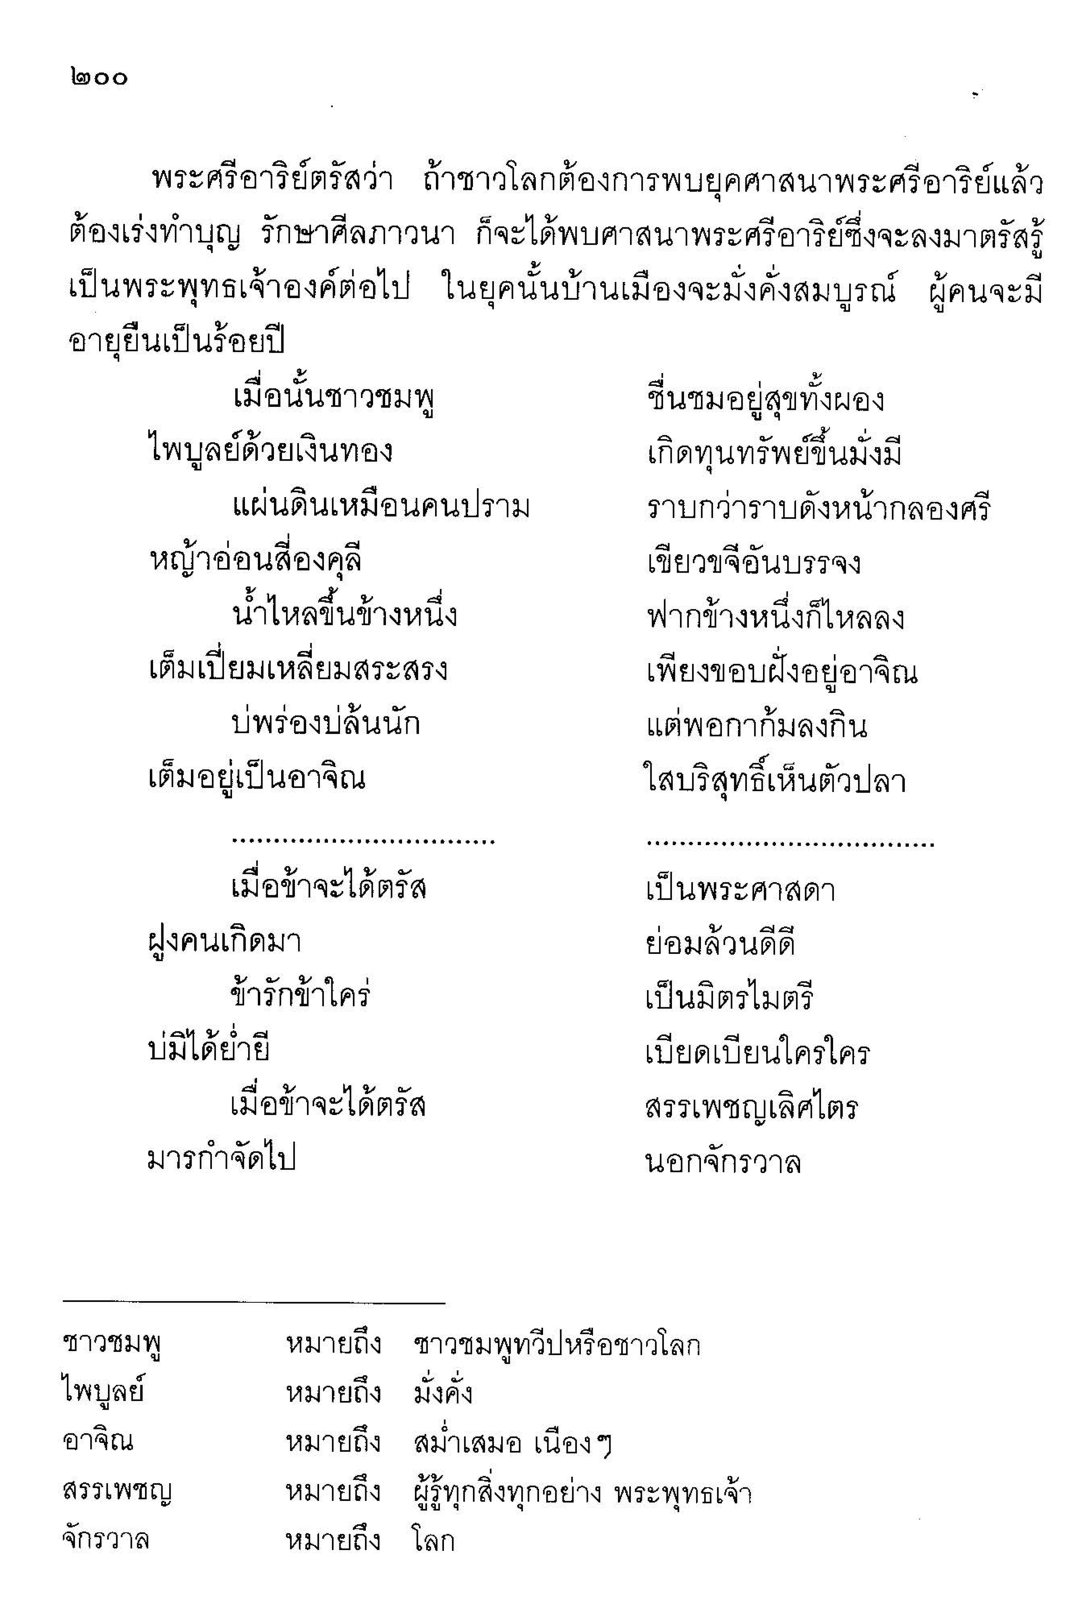 ebook_thai_sect_2_65-990_Page_208.jpg